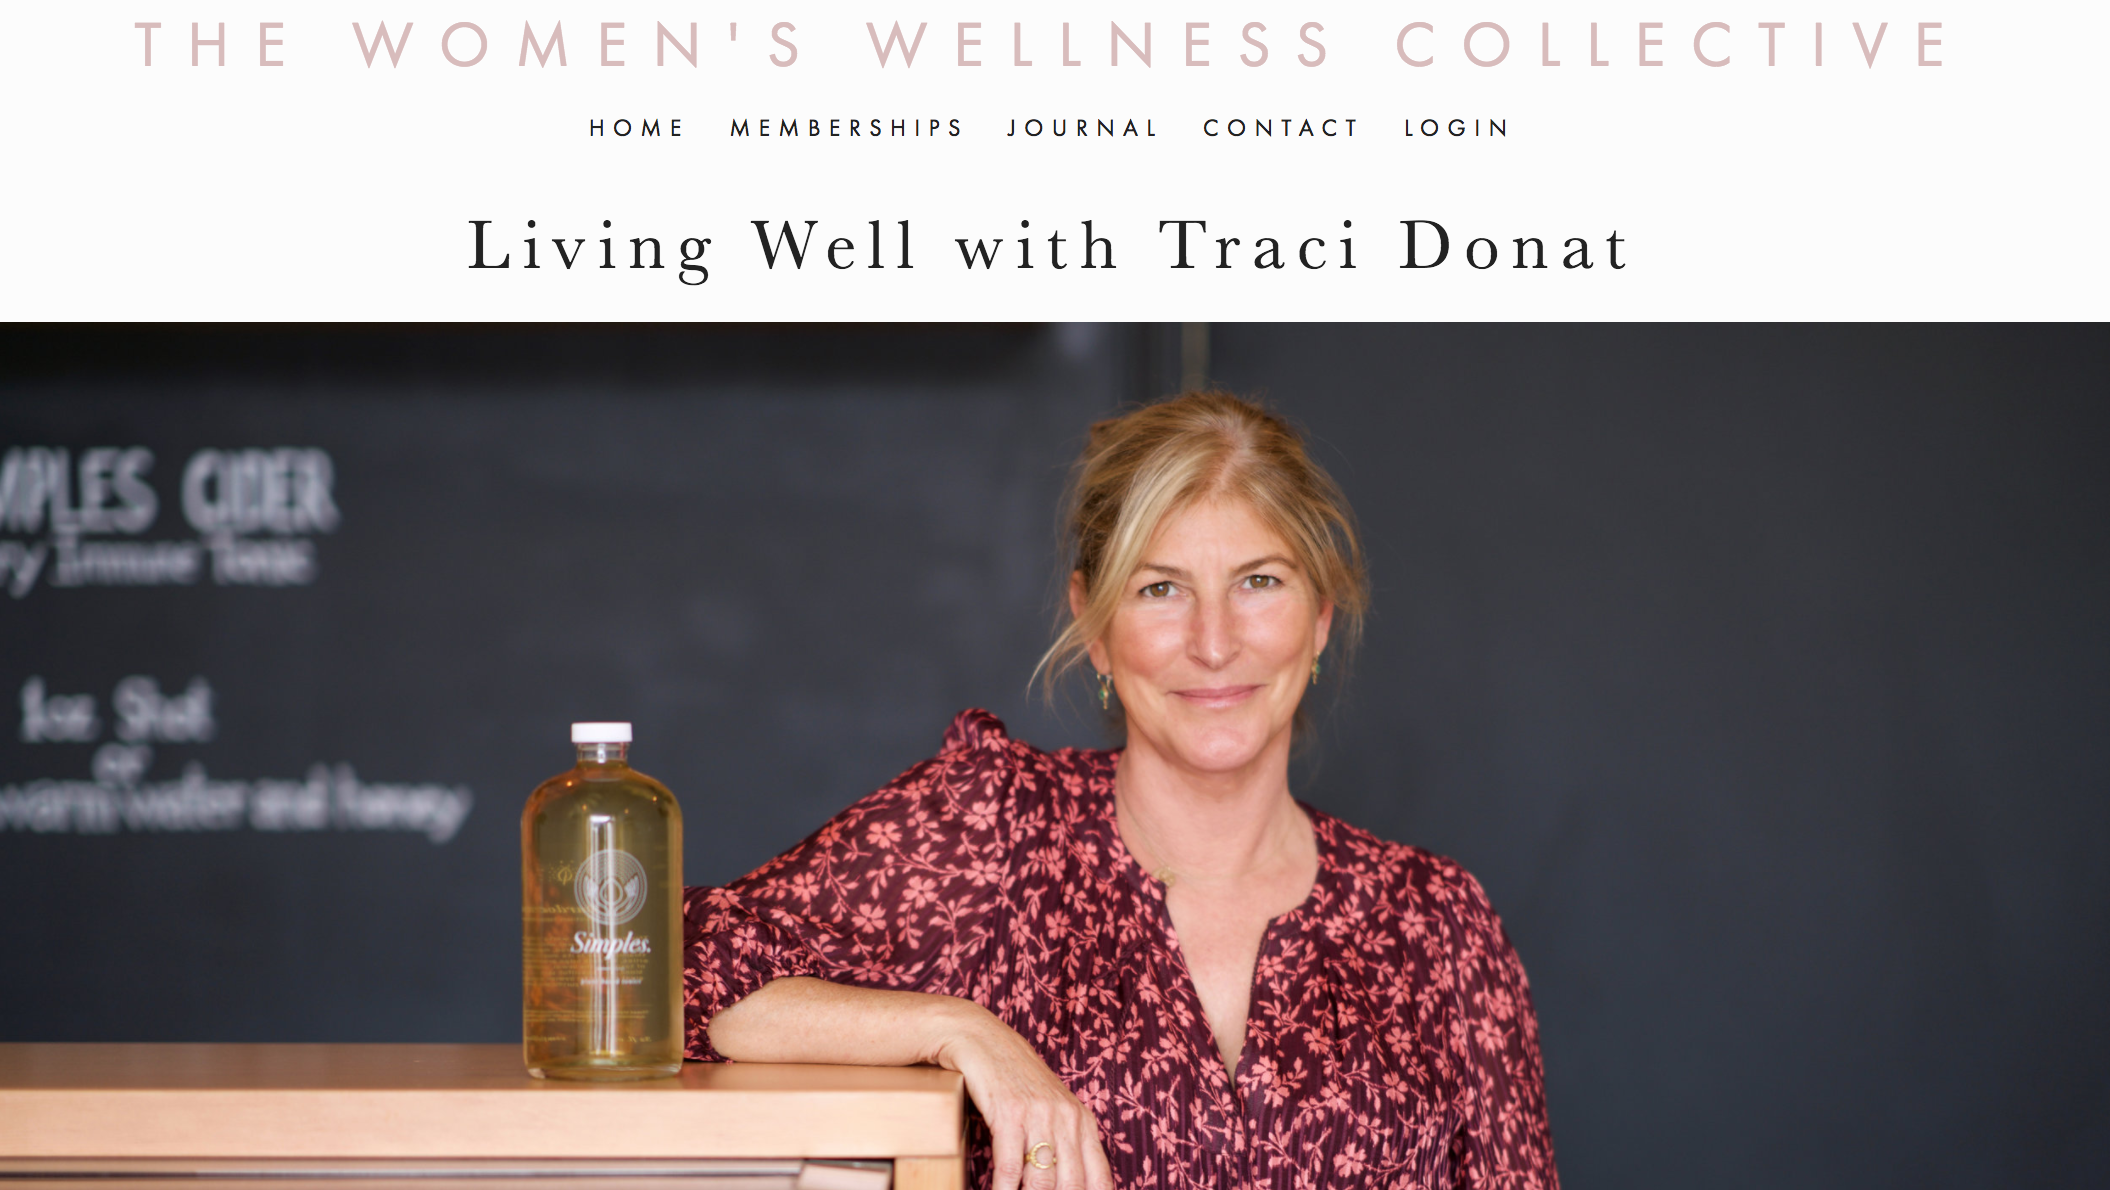 WOMEN'S WELLNESS COLLECTIVE - March 2018